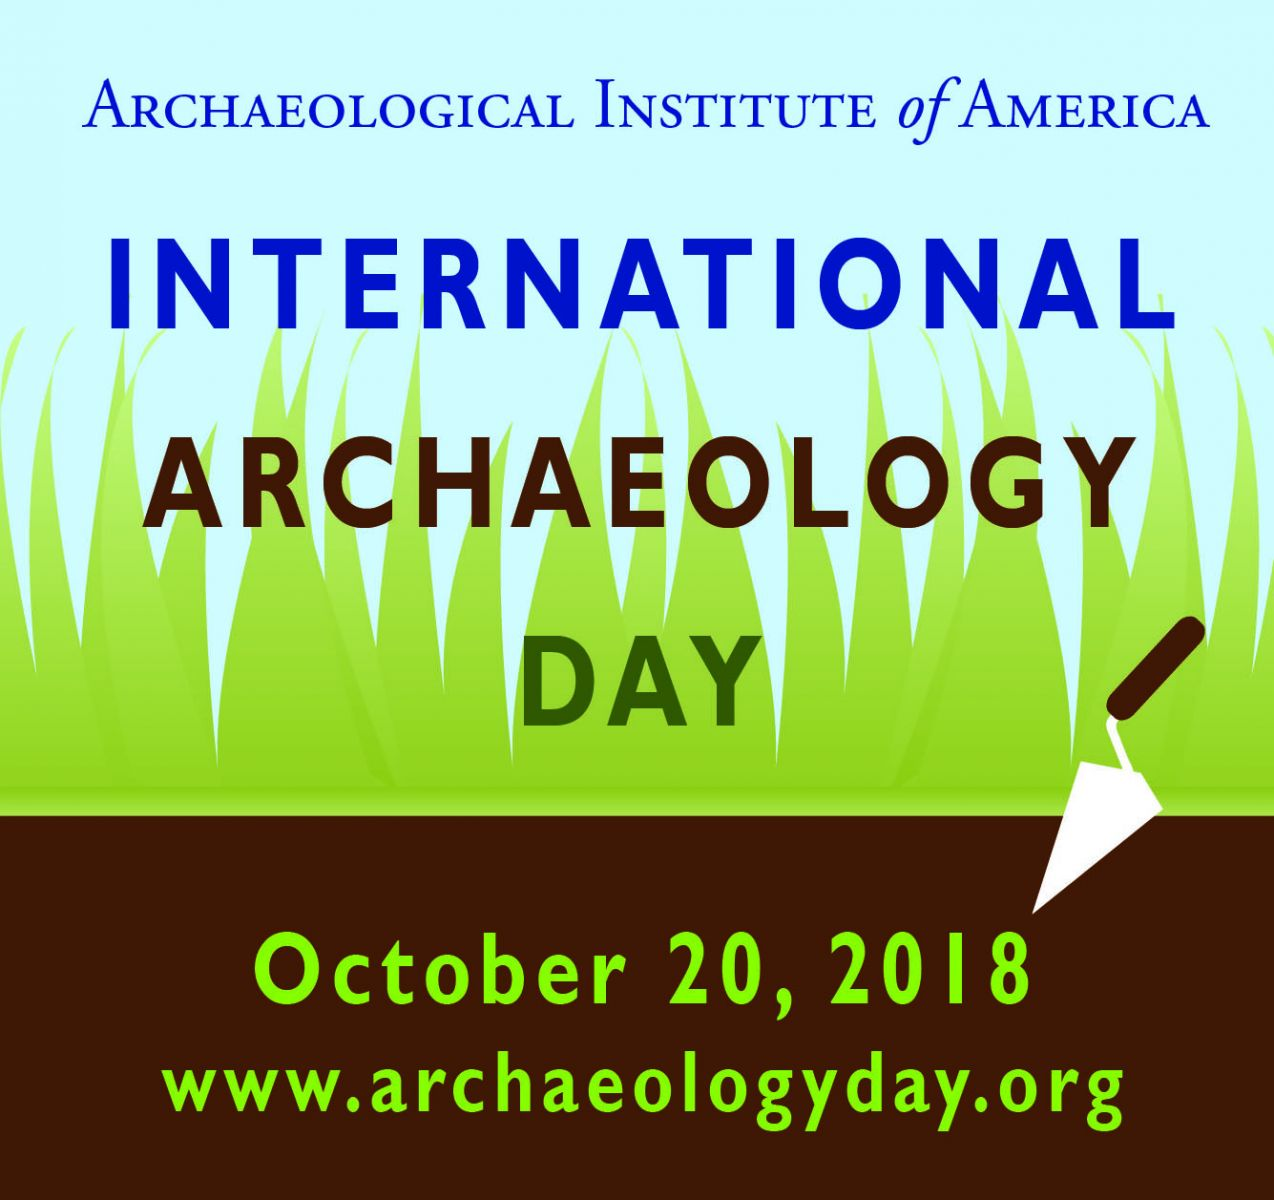 The institute for american indian studies museum research center lucianne lavin phd identifies and provides interesting commentary about your local stone objects and northeastern native american cultural items freerunsca Images